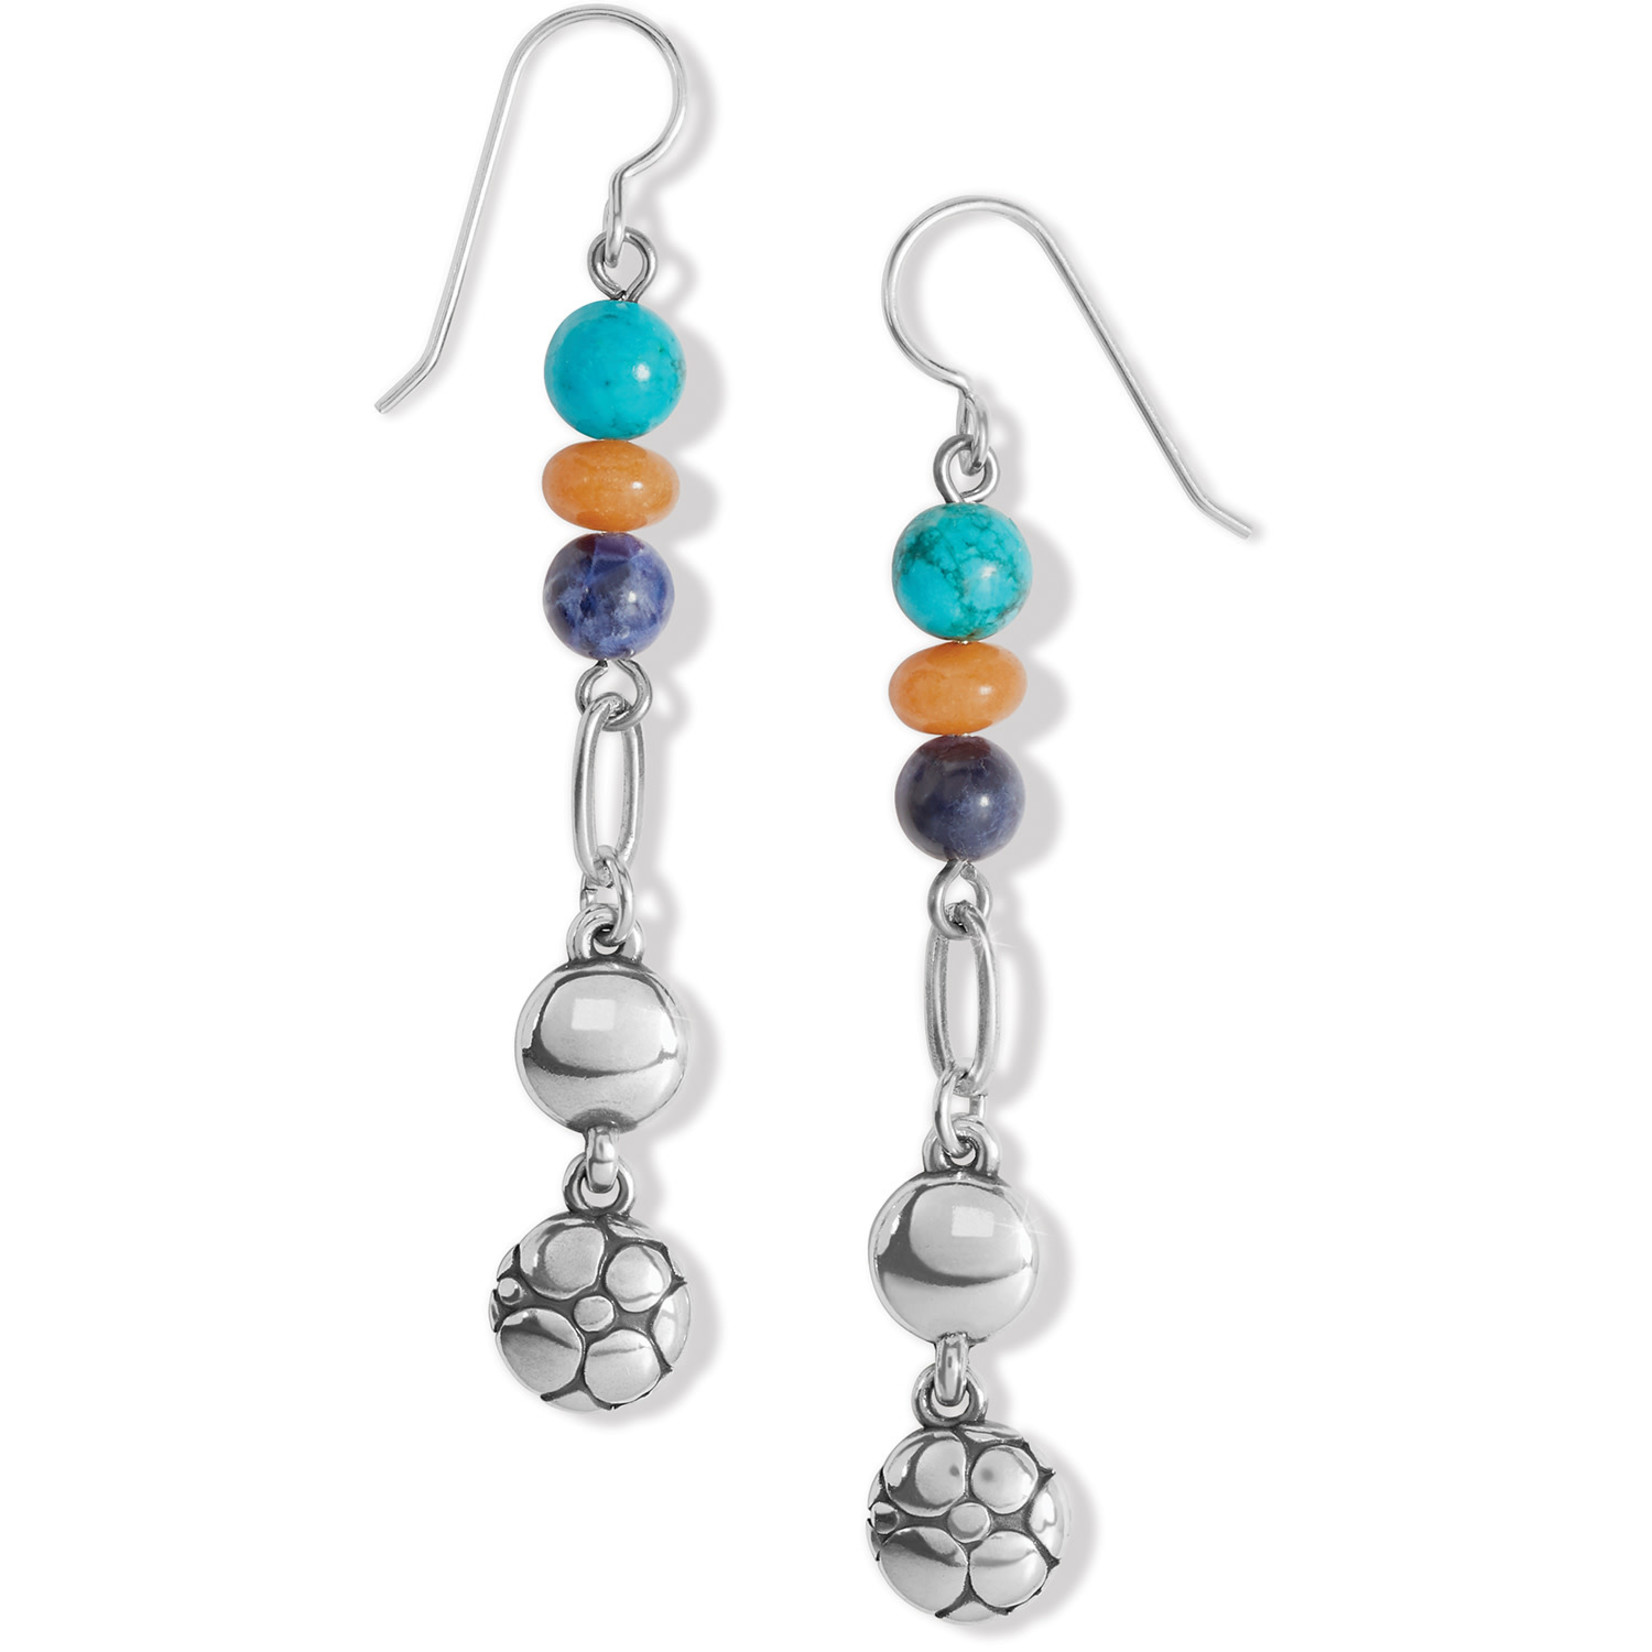 Brighton Pebble Multi French Wire Earrings